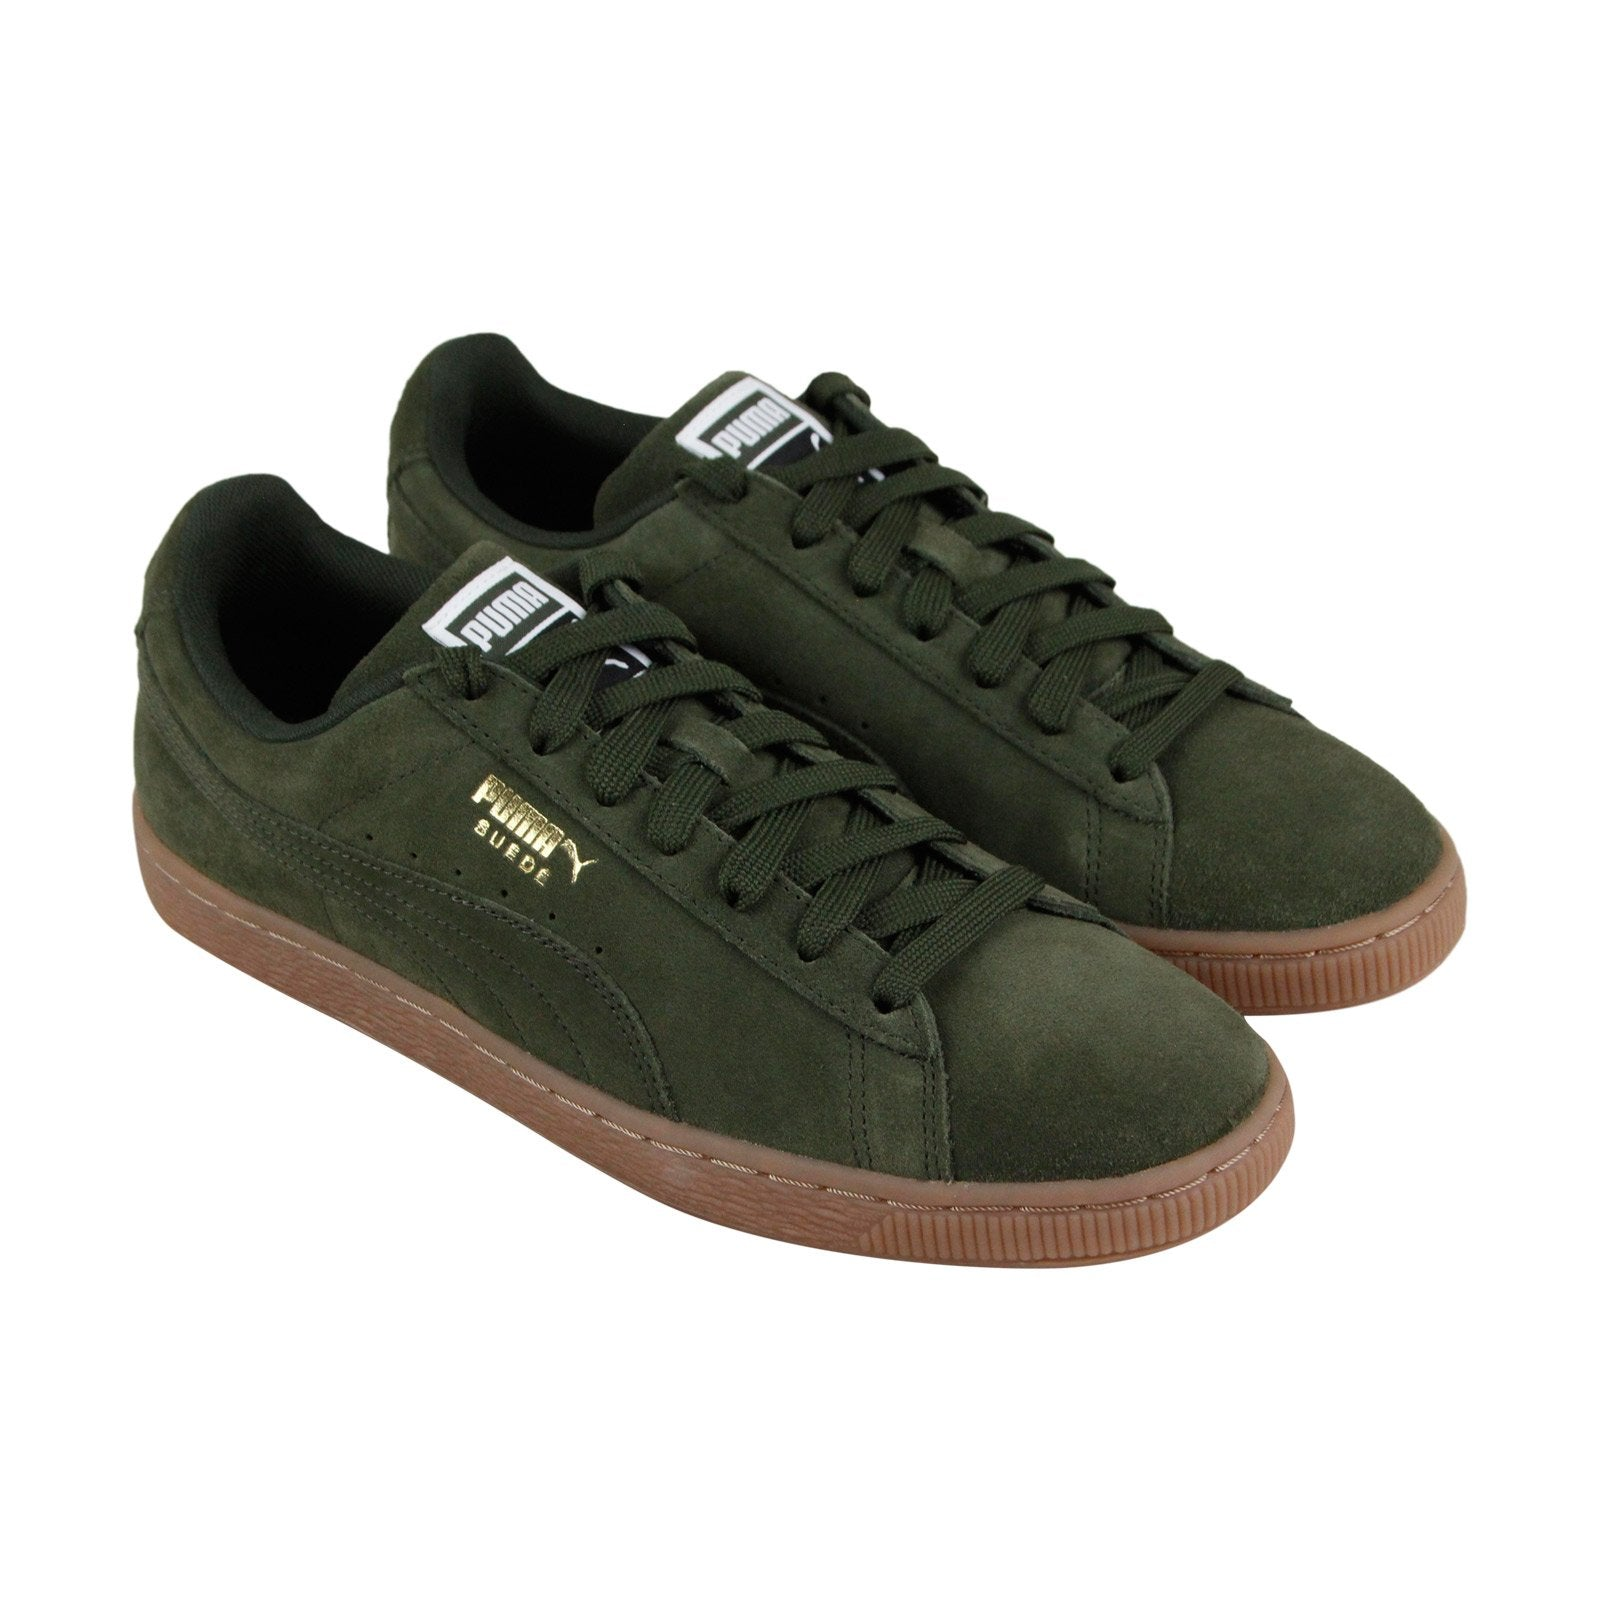 premium selection 2a258 40d6a Puma Suede Classic Mens Green Suede Low Top Lace Up Sneakers Shoes